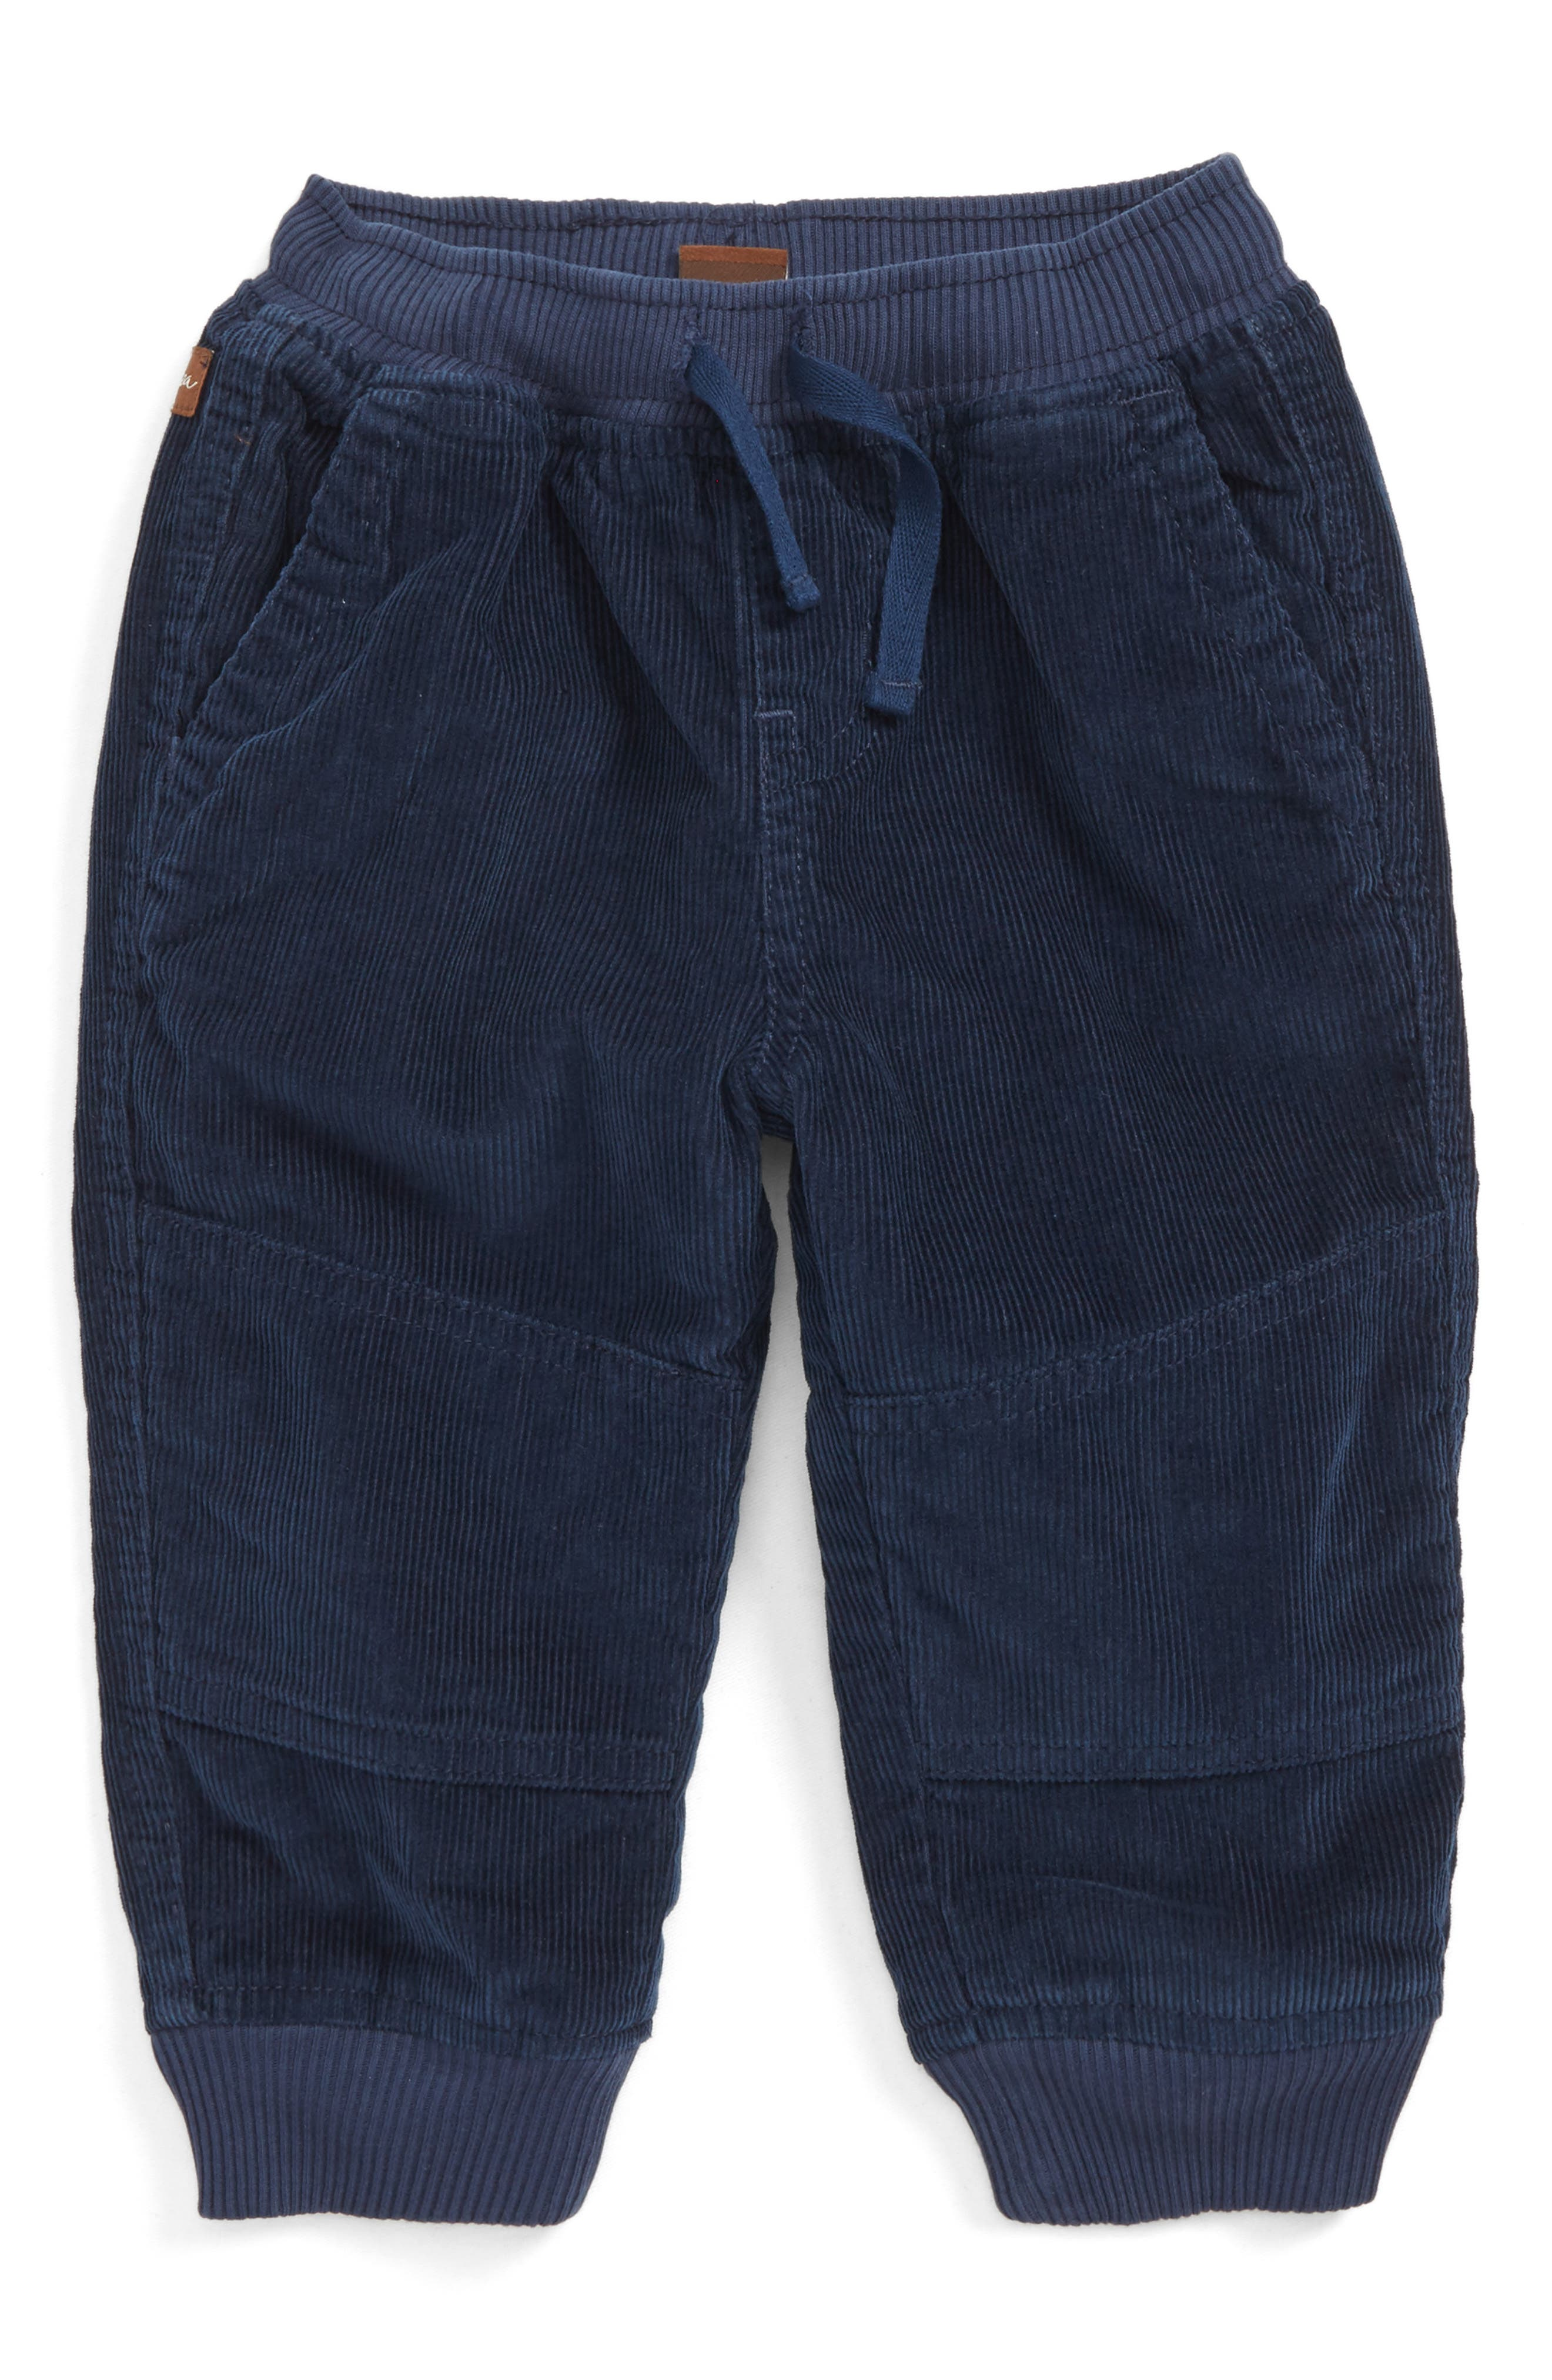 Alternate Image 1 Selected - Tea Collection Corduroy Jogging Pants (Baby Boys)